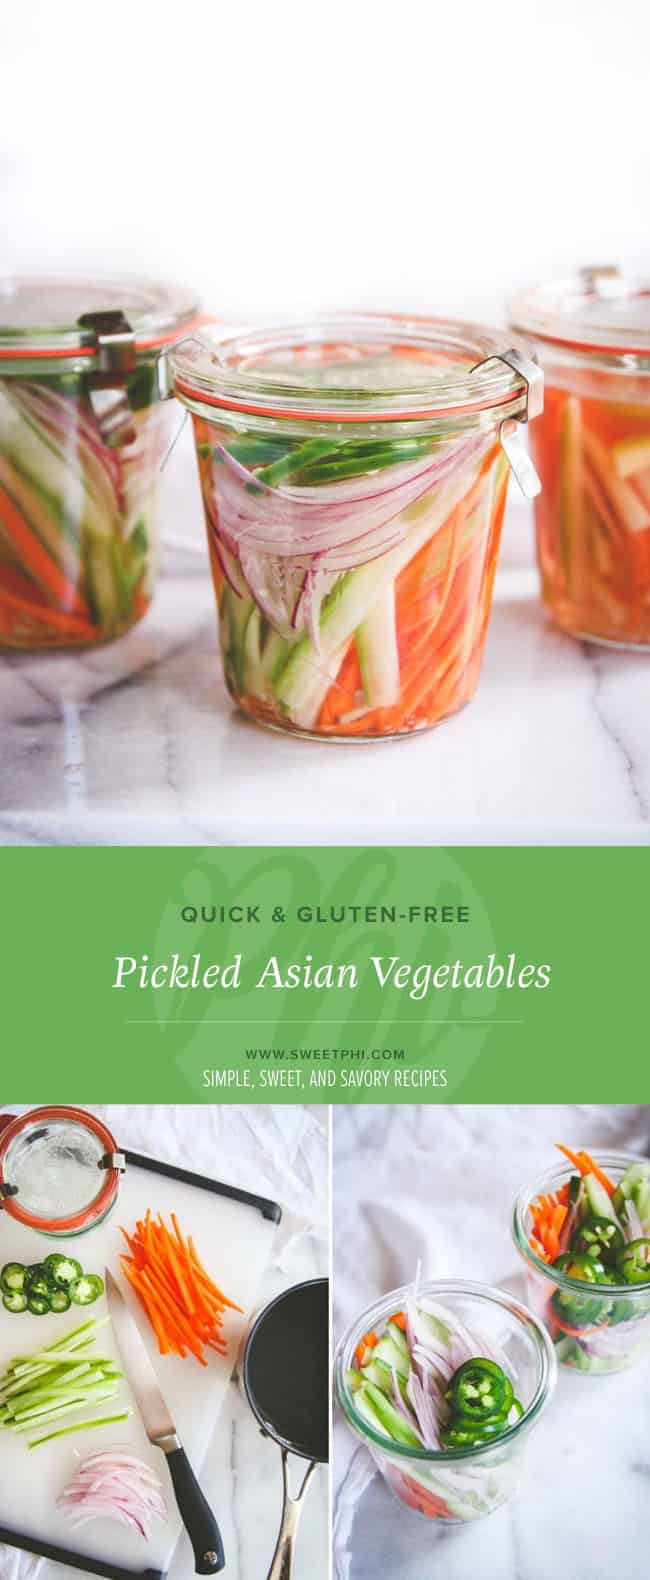 These are the easiest quick item to make to add a quick hit of Asian flavor to your meal. Quick pickled Asian vegetables!